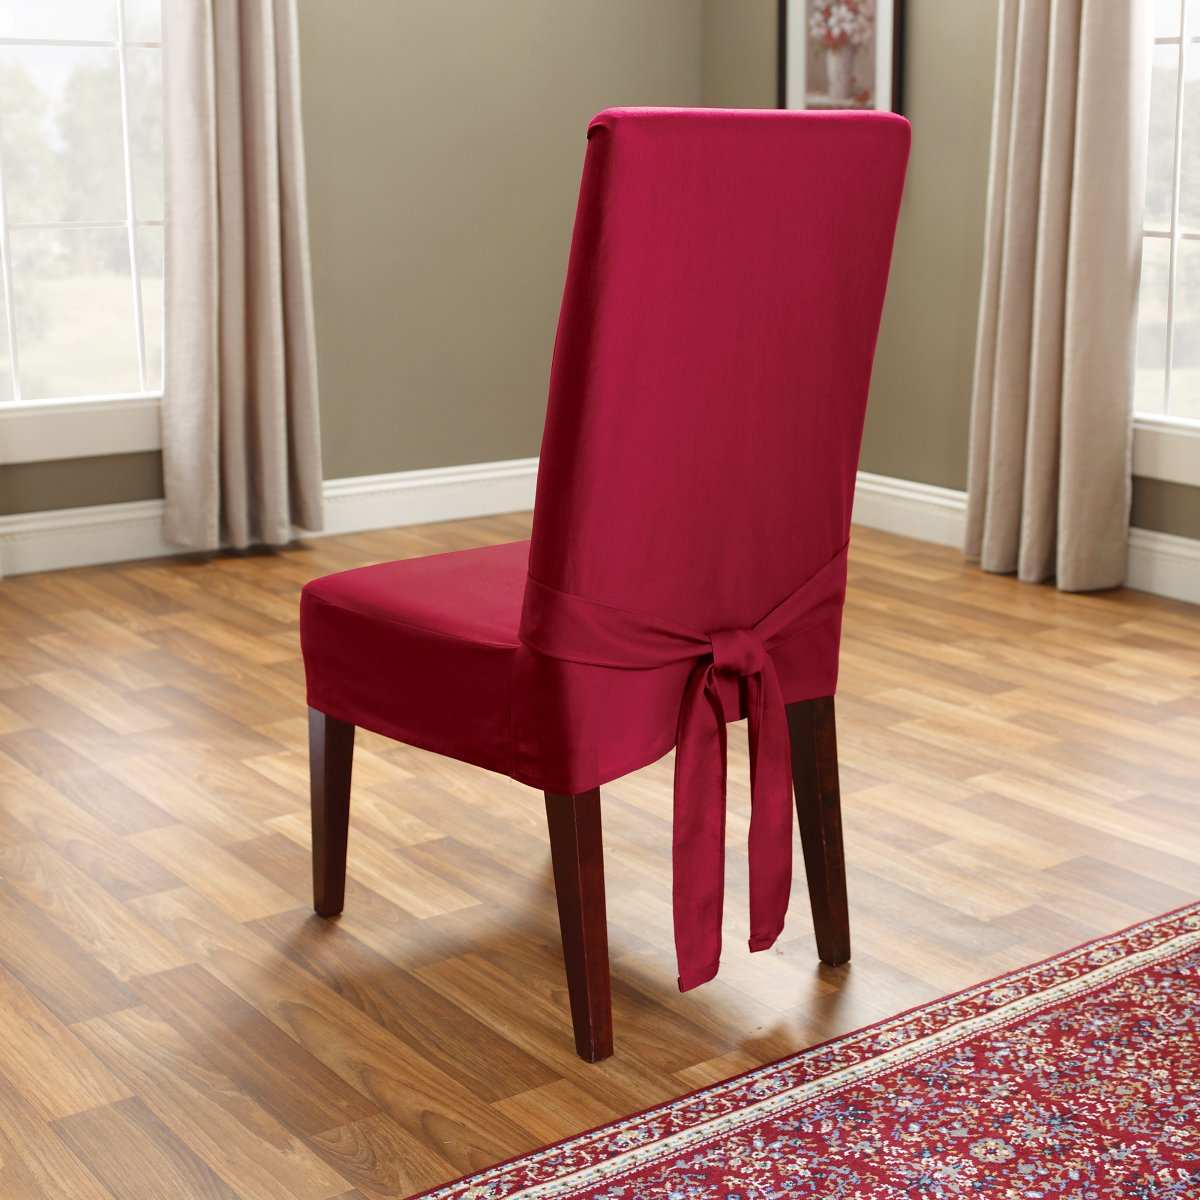 Plastic chair covers for dining room chairs